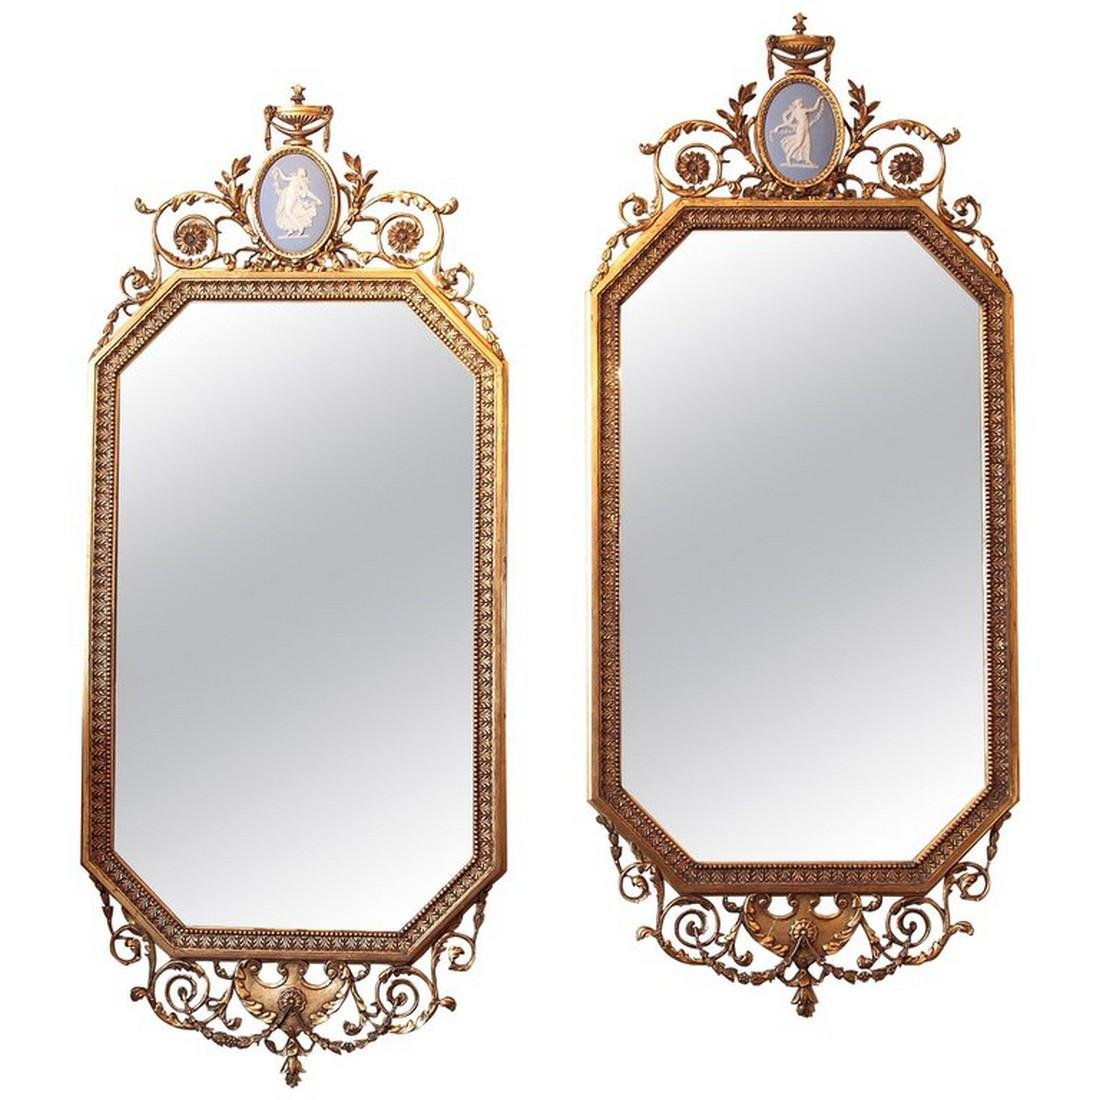 Pair of fine 19th century English gilt carved mirrors